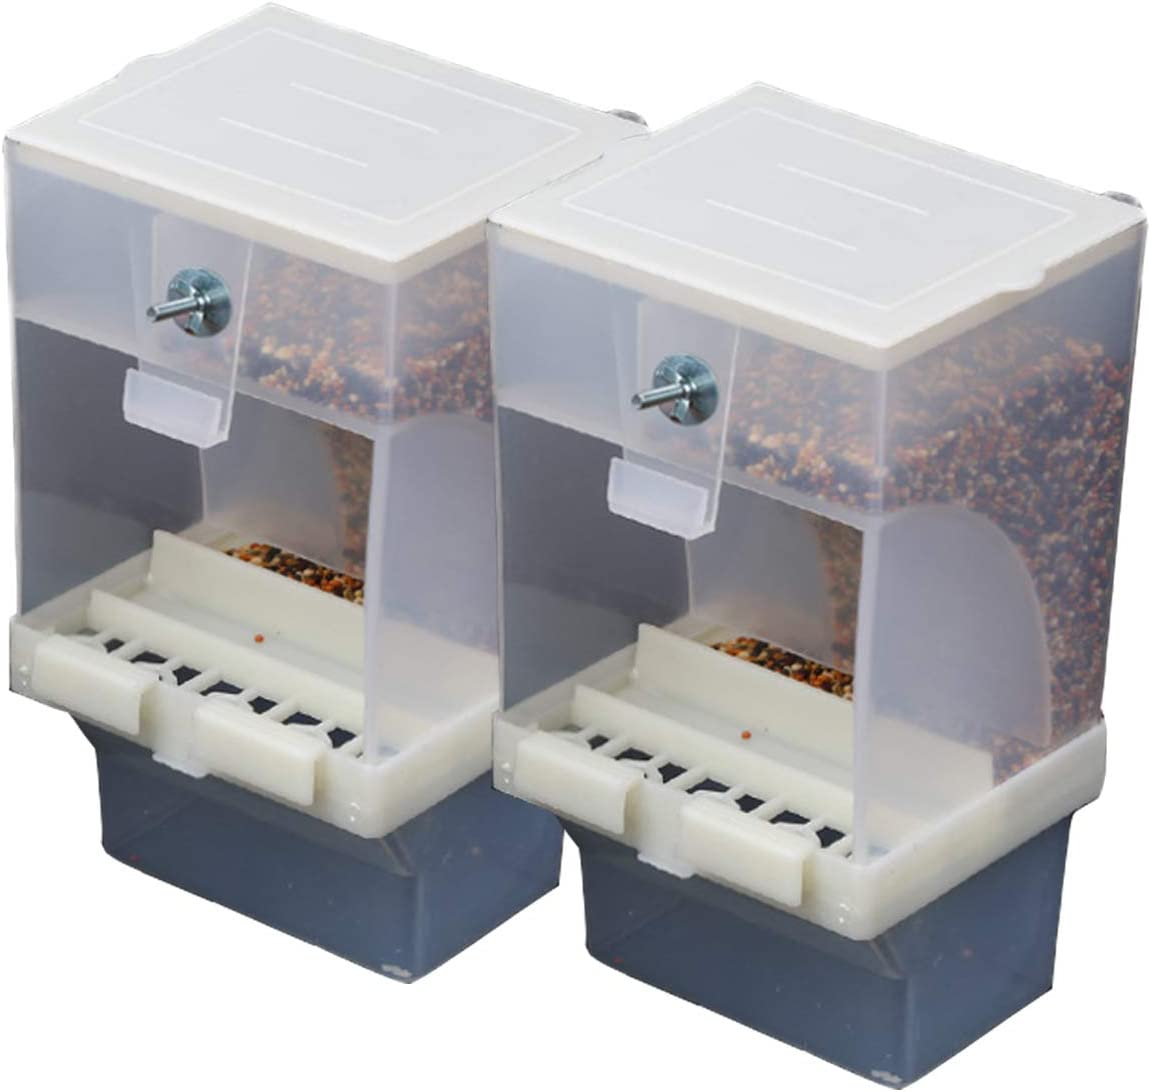 Tfwadmx Parrot Automatic Feeder No Mess Bird Feeder Cage Accessories Seed Food Container for Budgerigar Canary Cockatiel Finch Parakeet Two for A Set